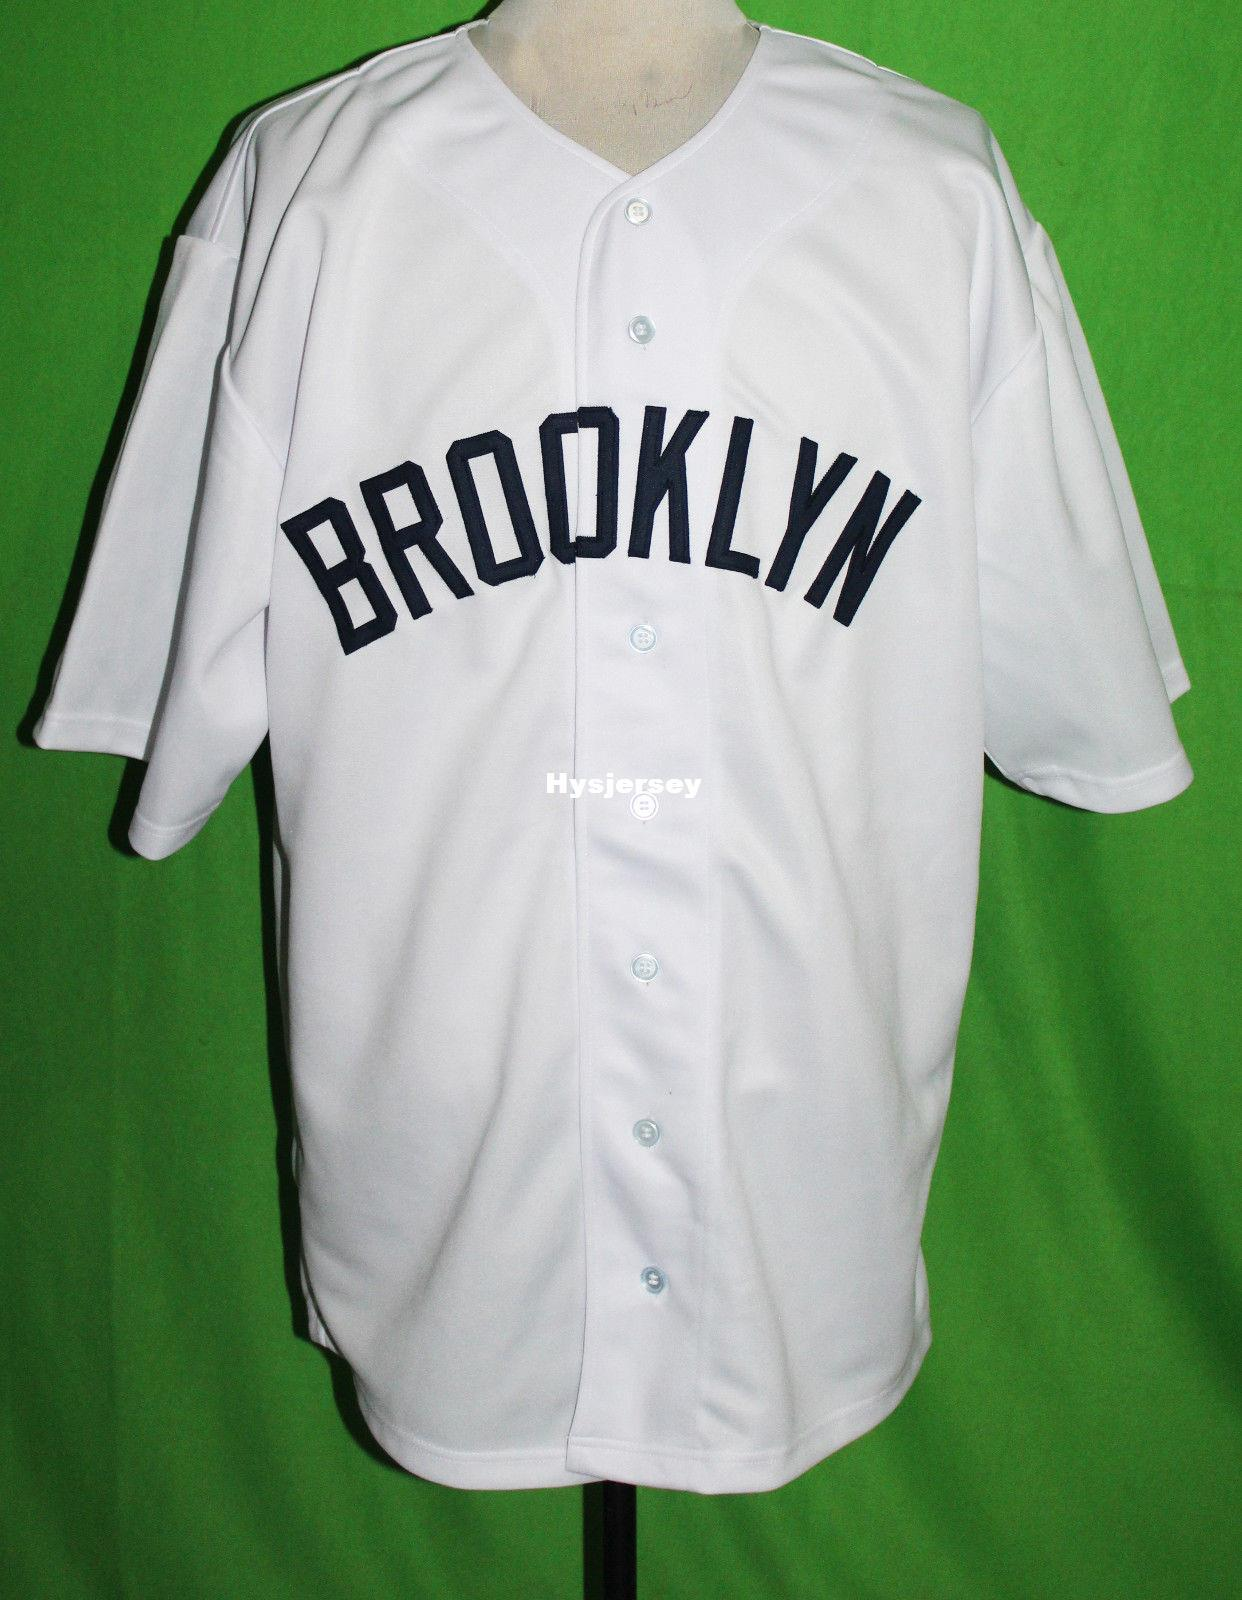 98a1fbe9 2019 Cheap Retro BROOKLYN LOONS #6 1951 Home BASEBALL JERSEY Or Custom Any  Number Any Mens Vintage Jerseys XS 5XL From Hysjersey, $19.65 | DHgate.Com